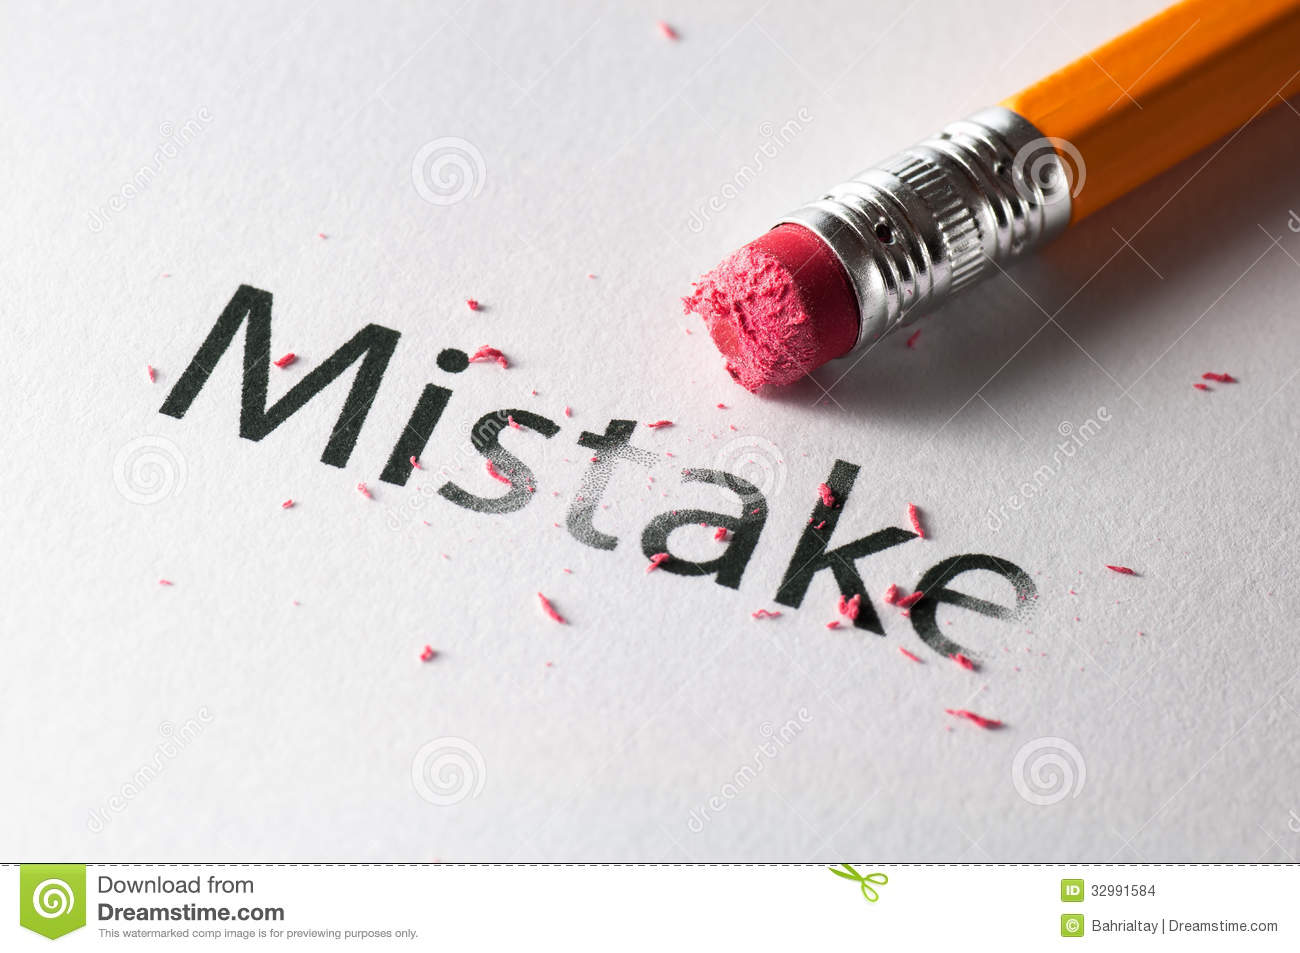 Mistake Clipart - Clipart Kid